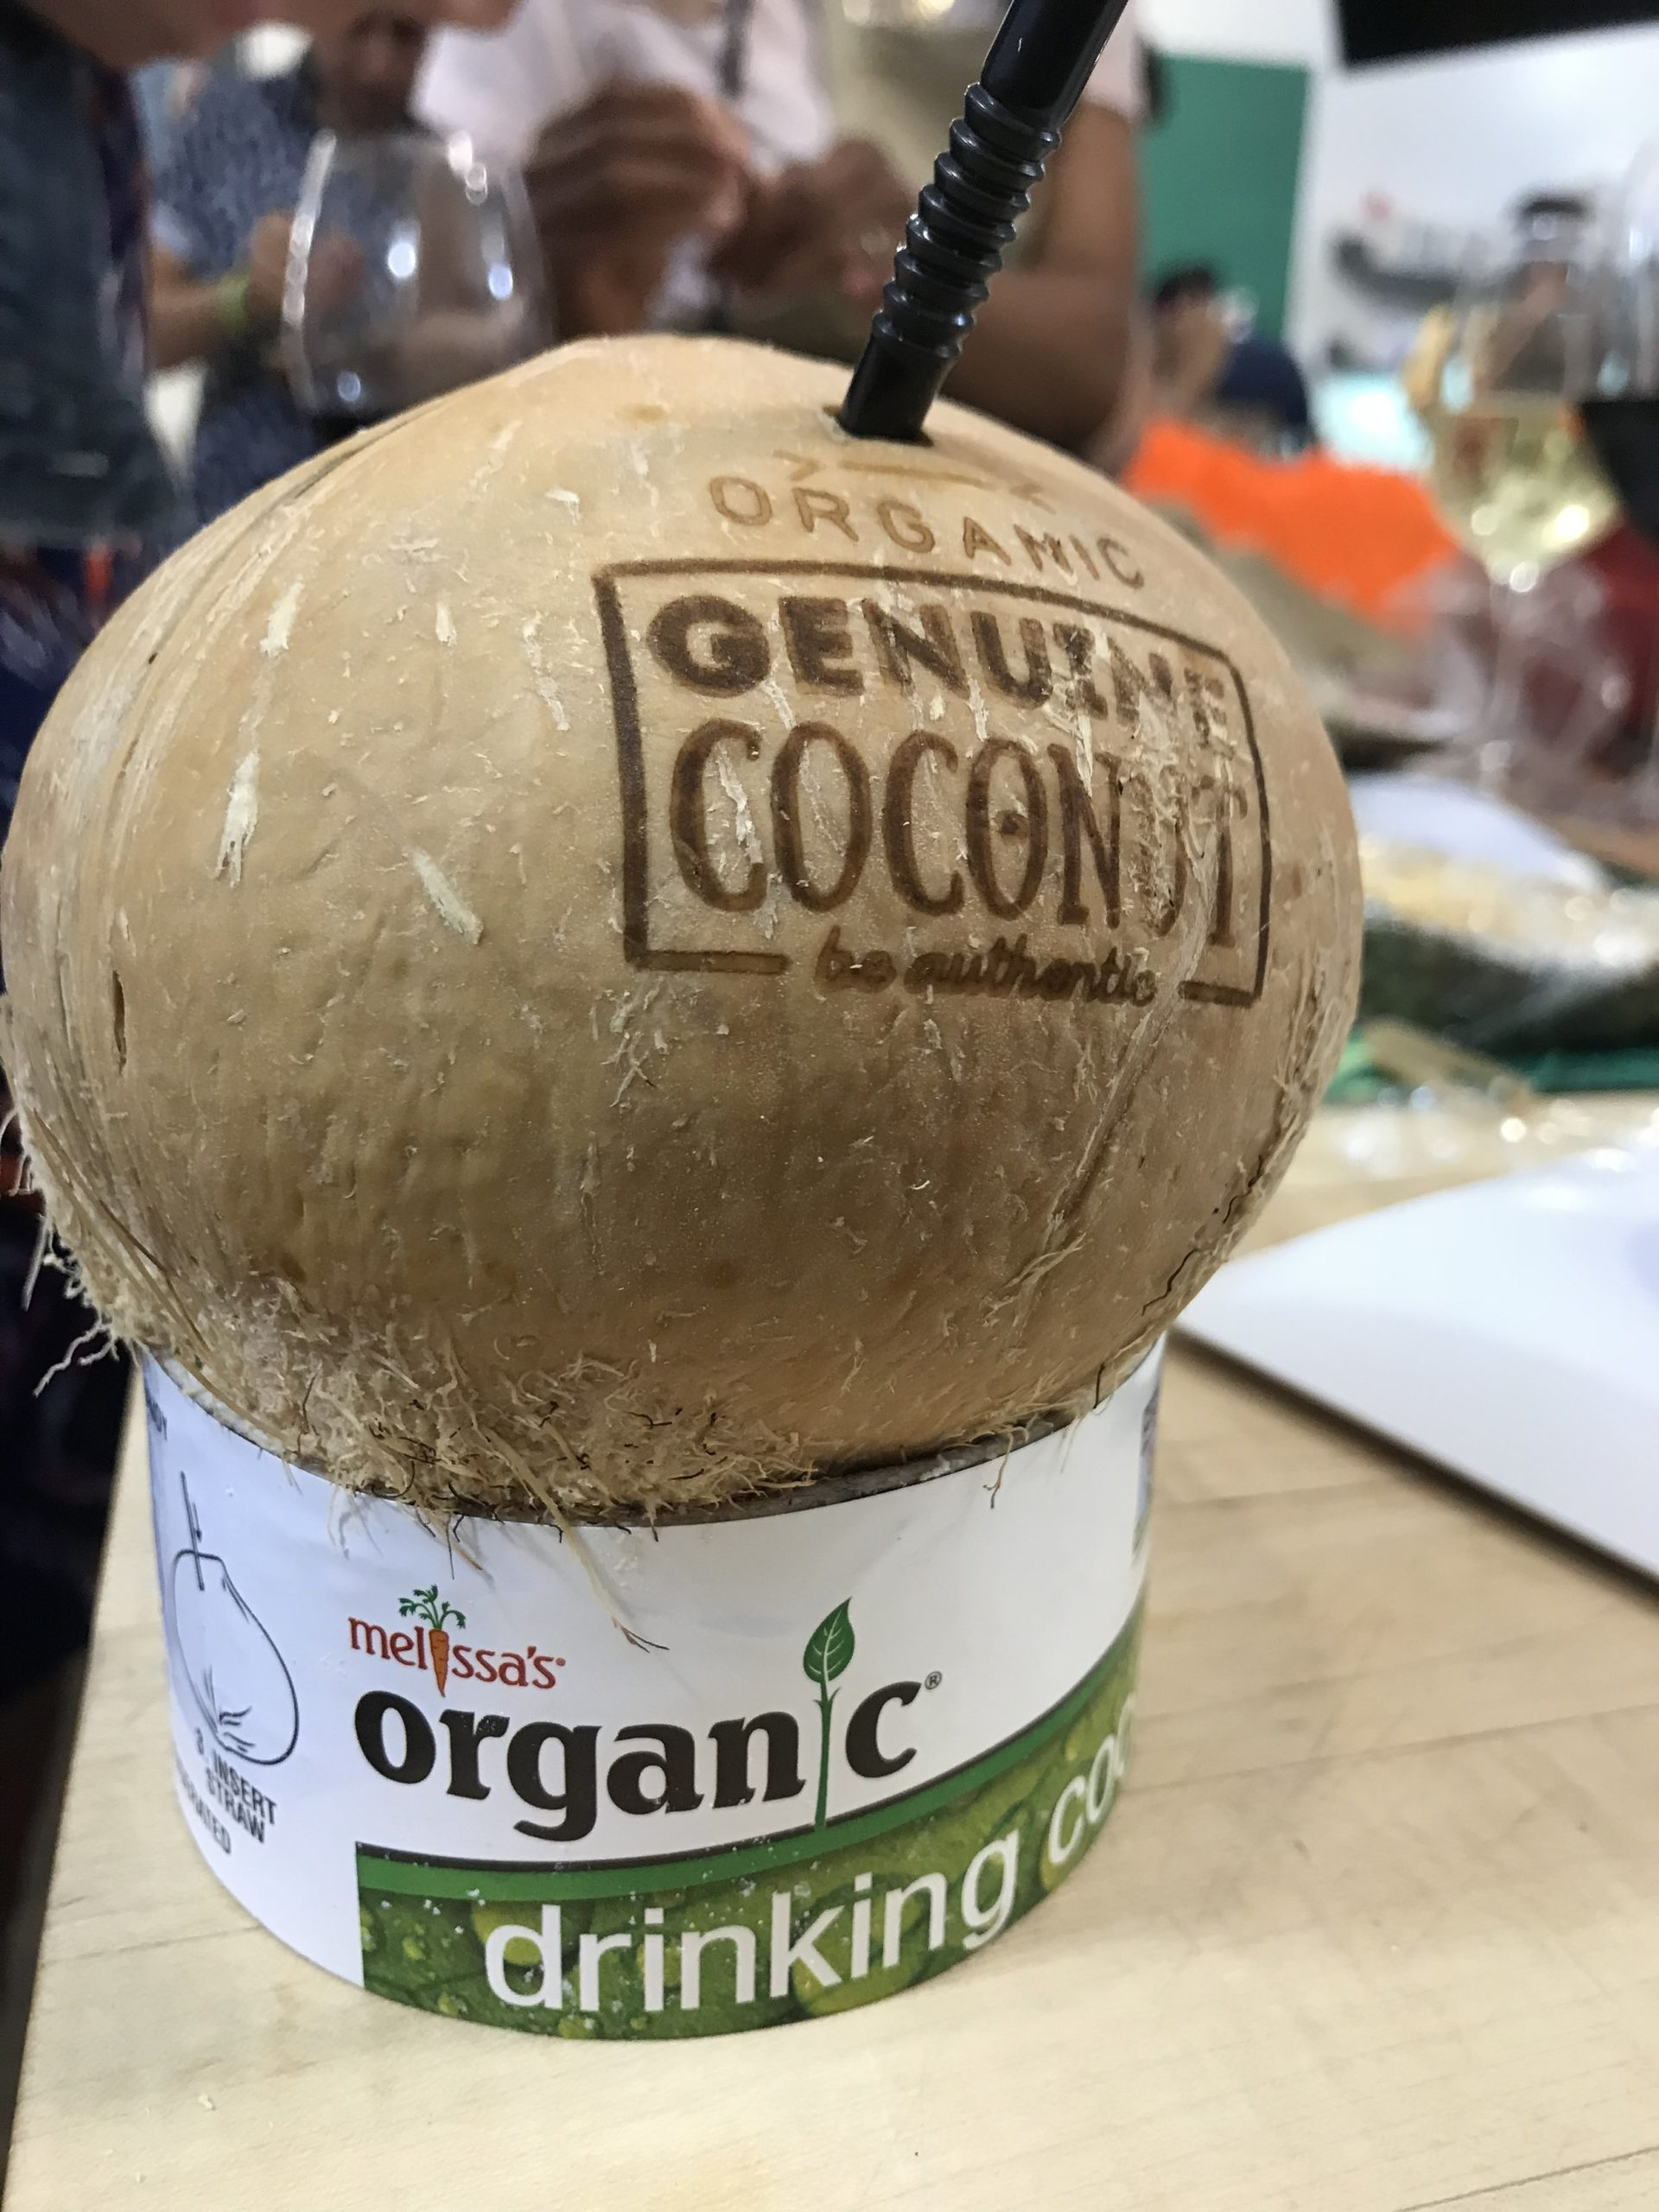 How fun is this?? Freshly tapped coconut water!